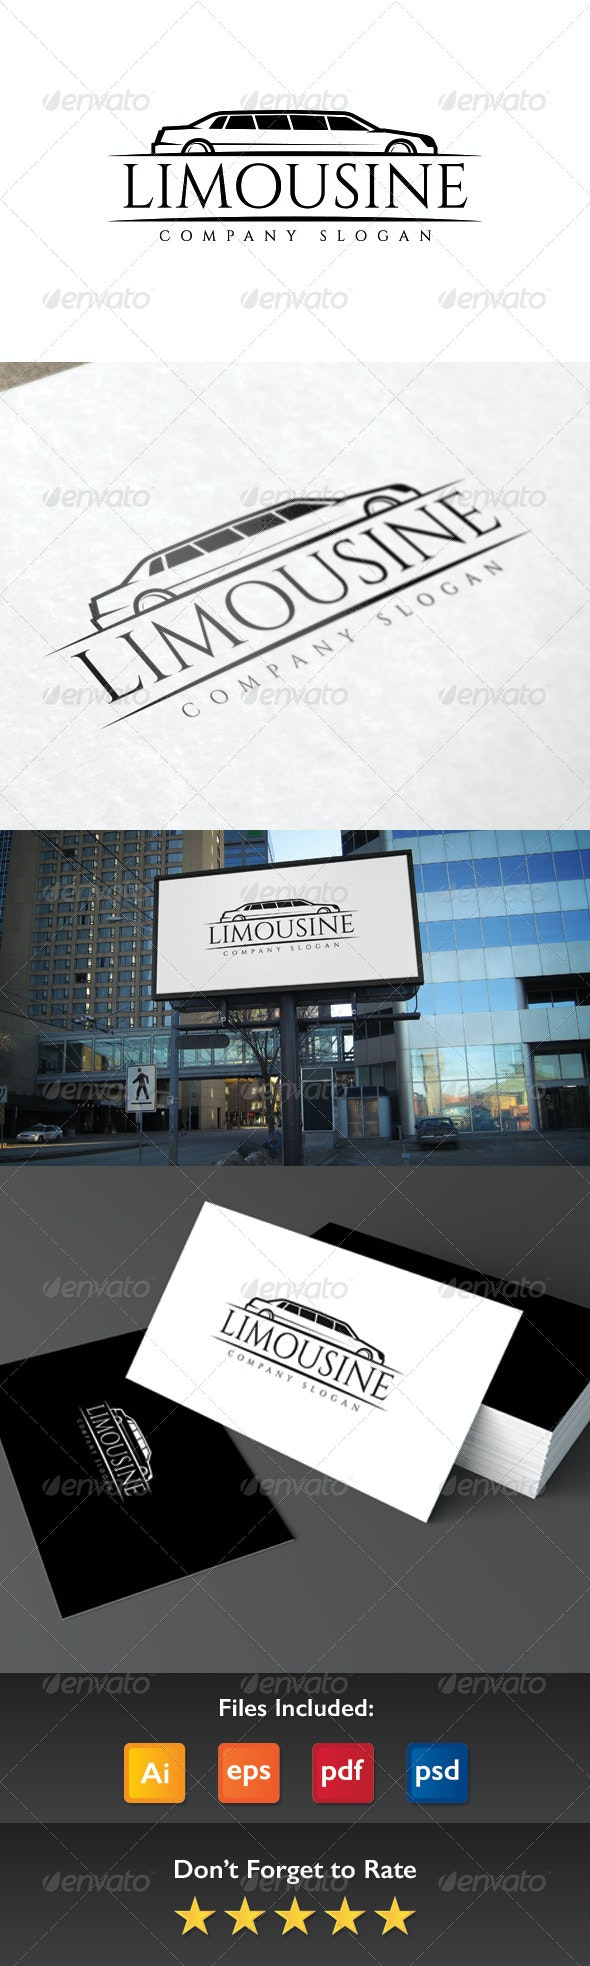 Limousine Logo - Objects Logo Templates